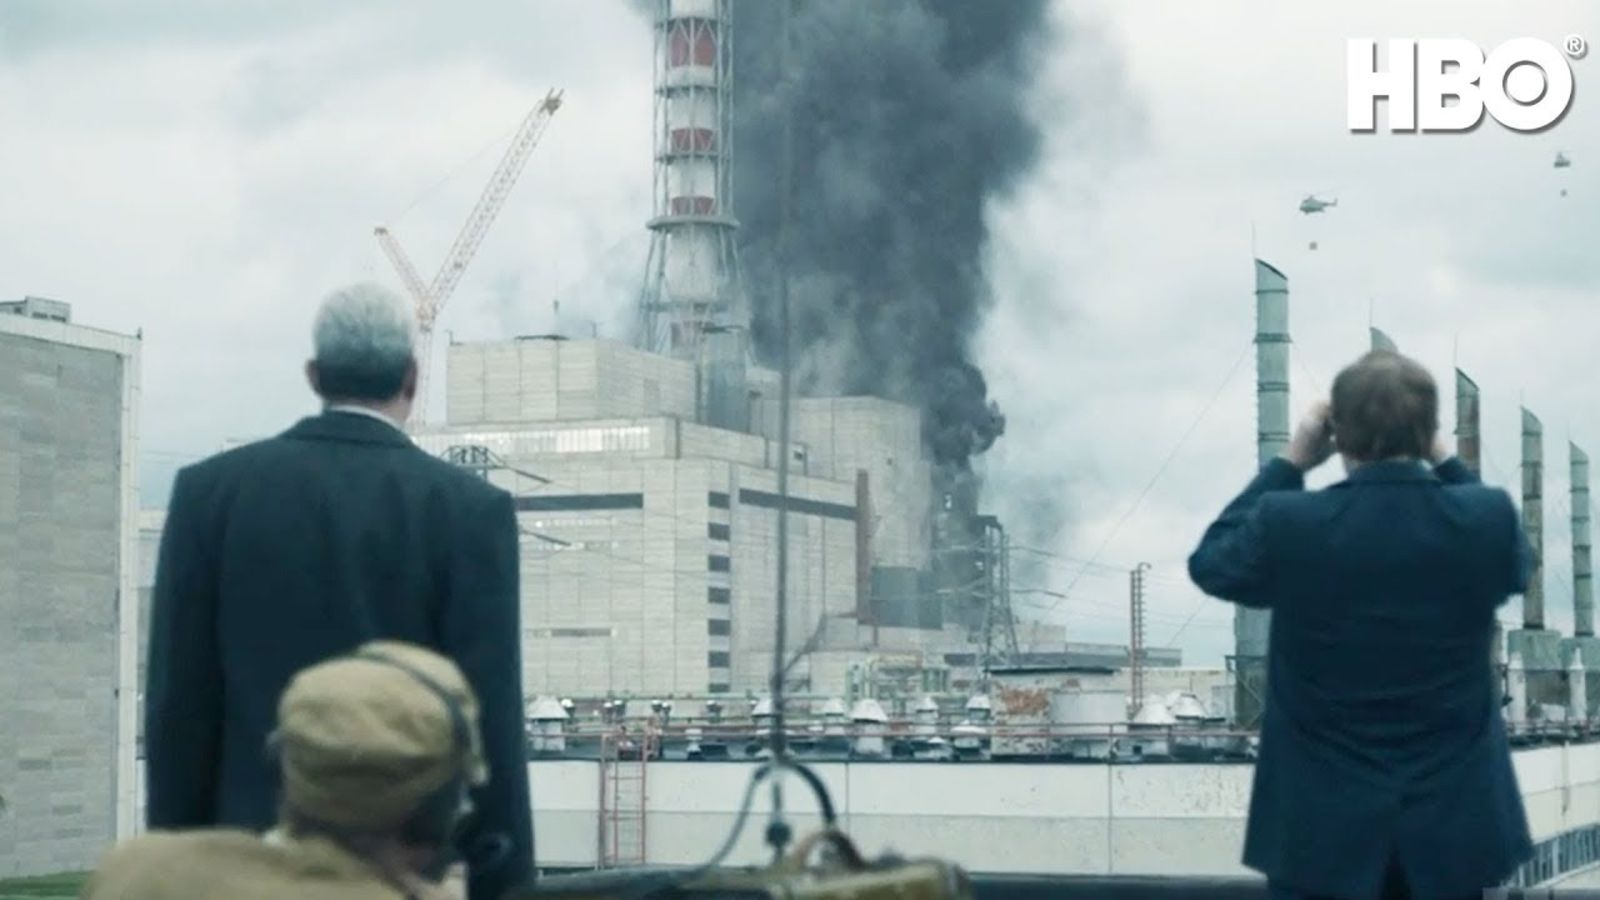 HBO Announces Next Disaster Mini-Series Documentary After Success of 'Chernobyl'